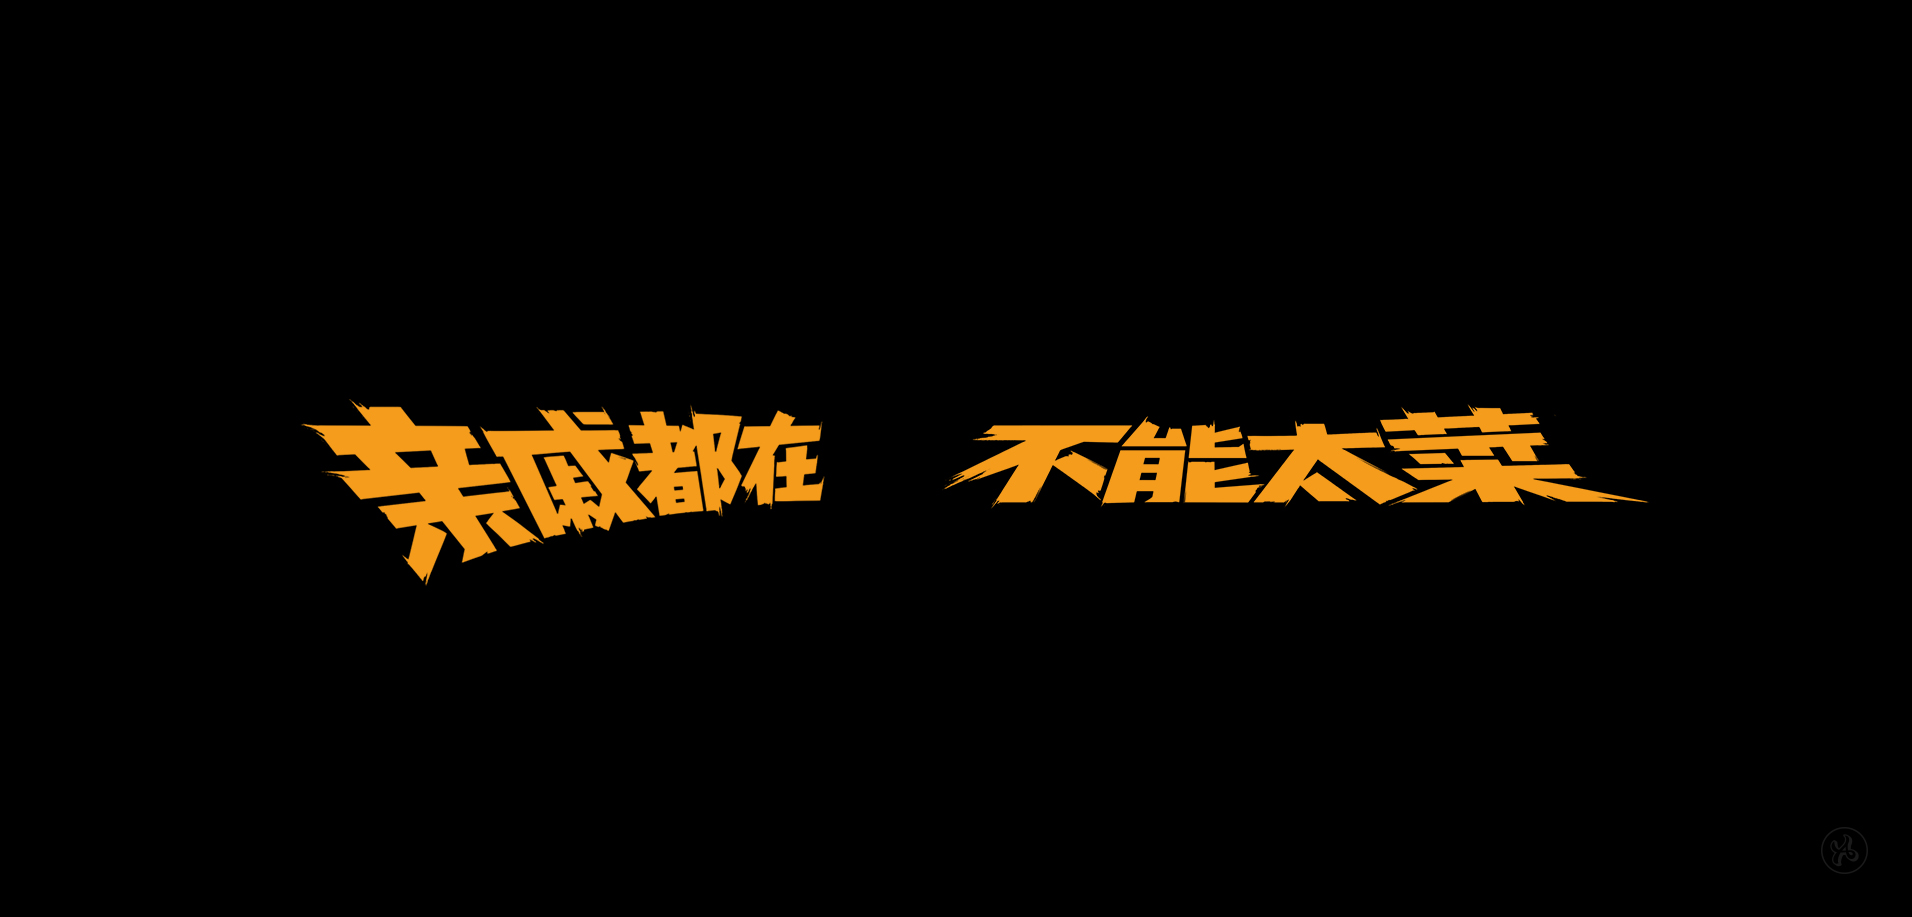 15P Collection of the latest Chinese font design schemes in 2021 #.172